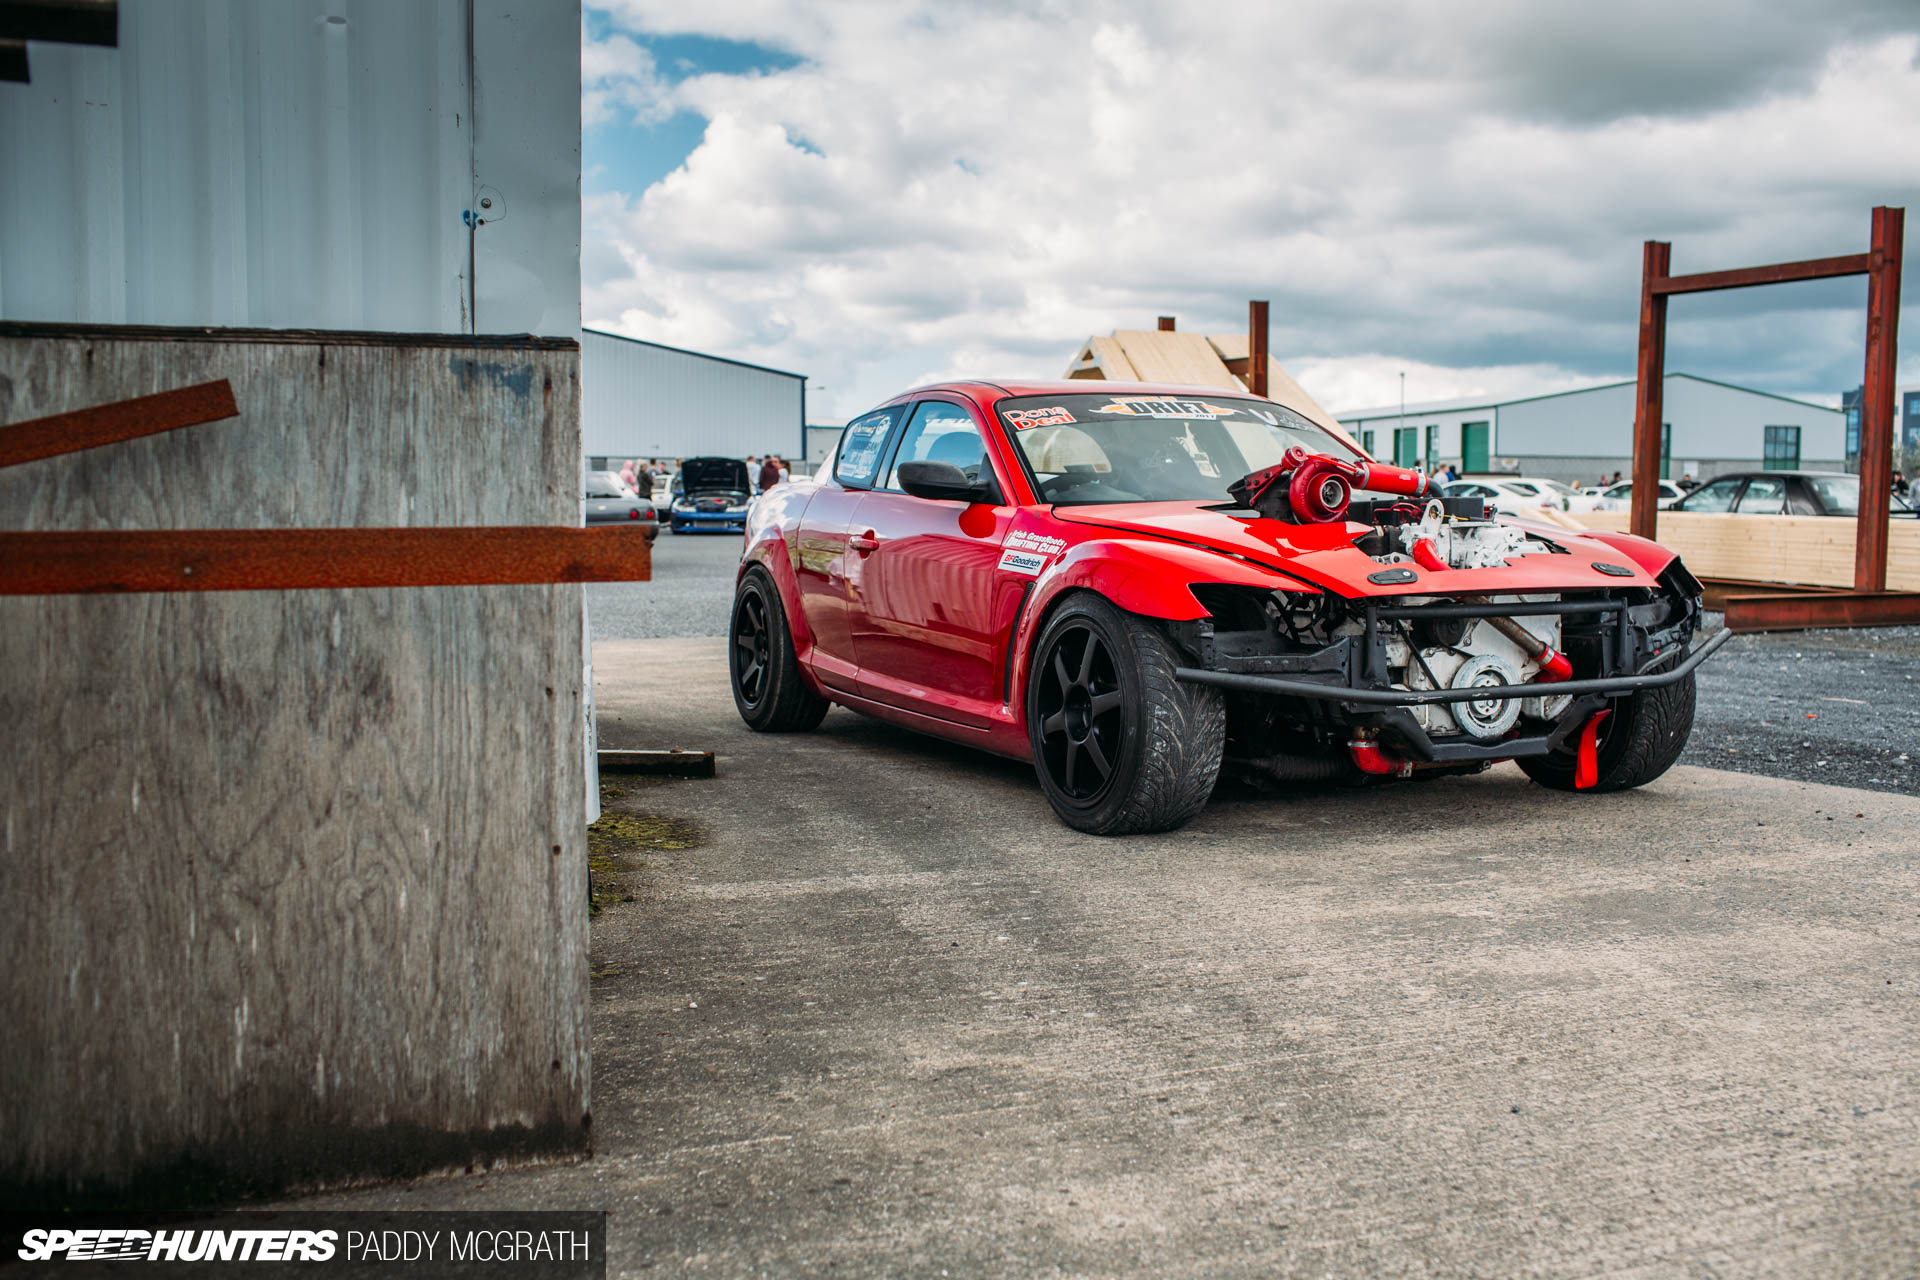 2017-Juicebox-BBQ-Mazda-RX-Hate-Speedhunters-by-Paddy-McGrath-28 (1).